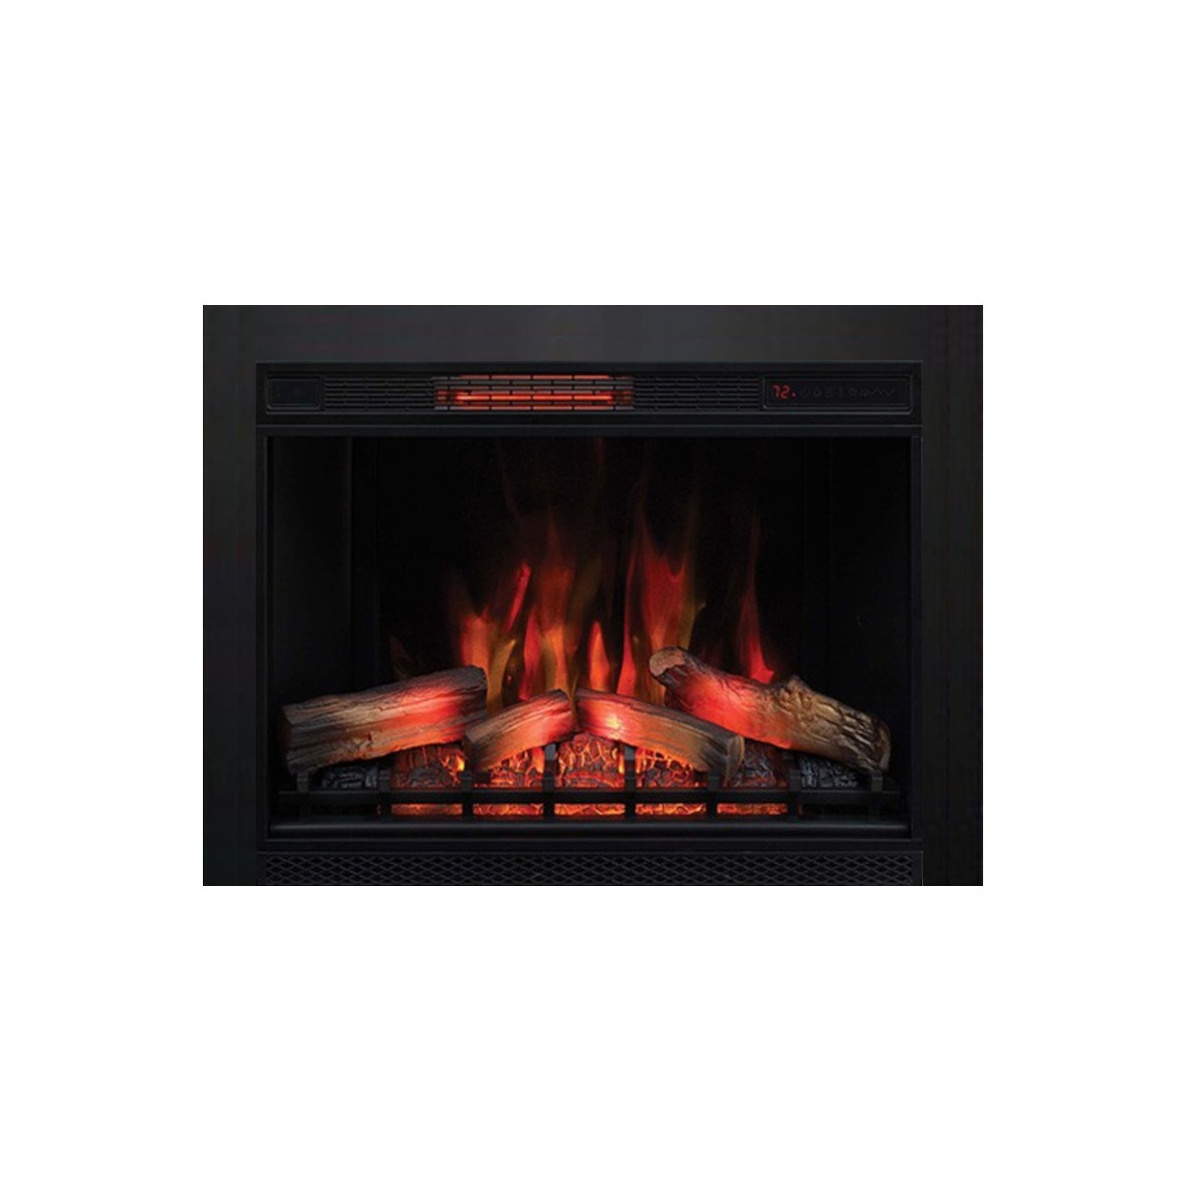 infrared electric fireplace insert with remove-able black 3-sided trim